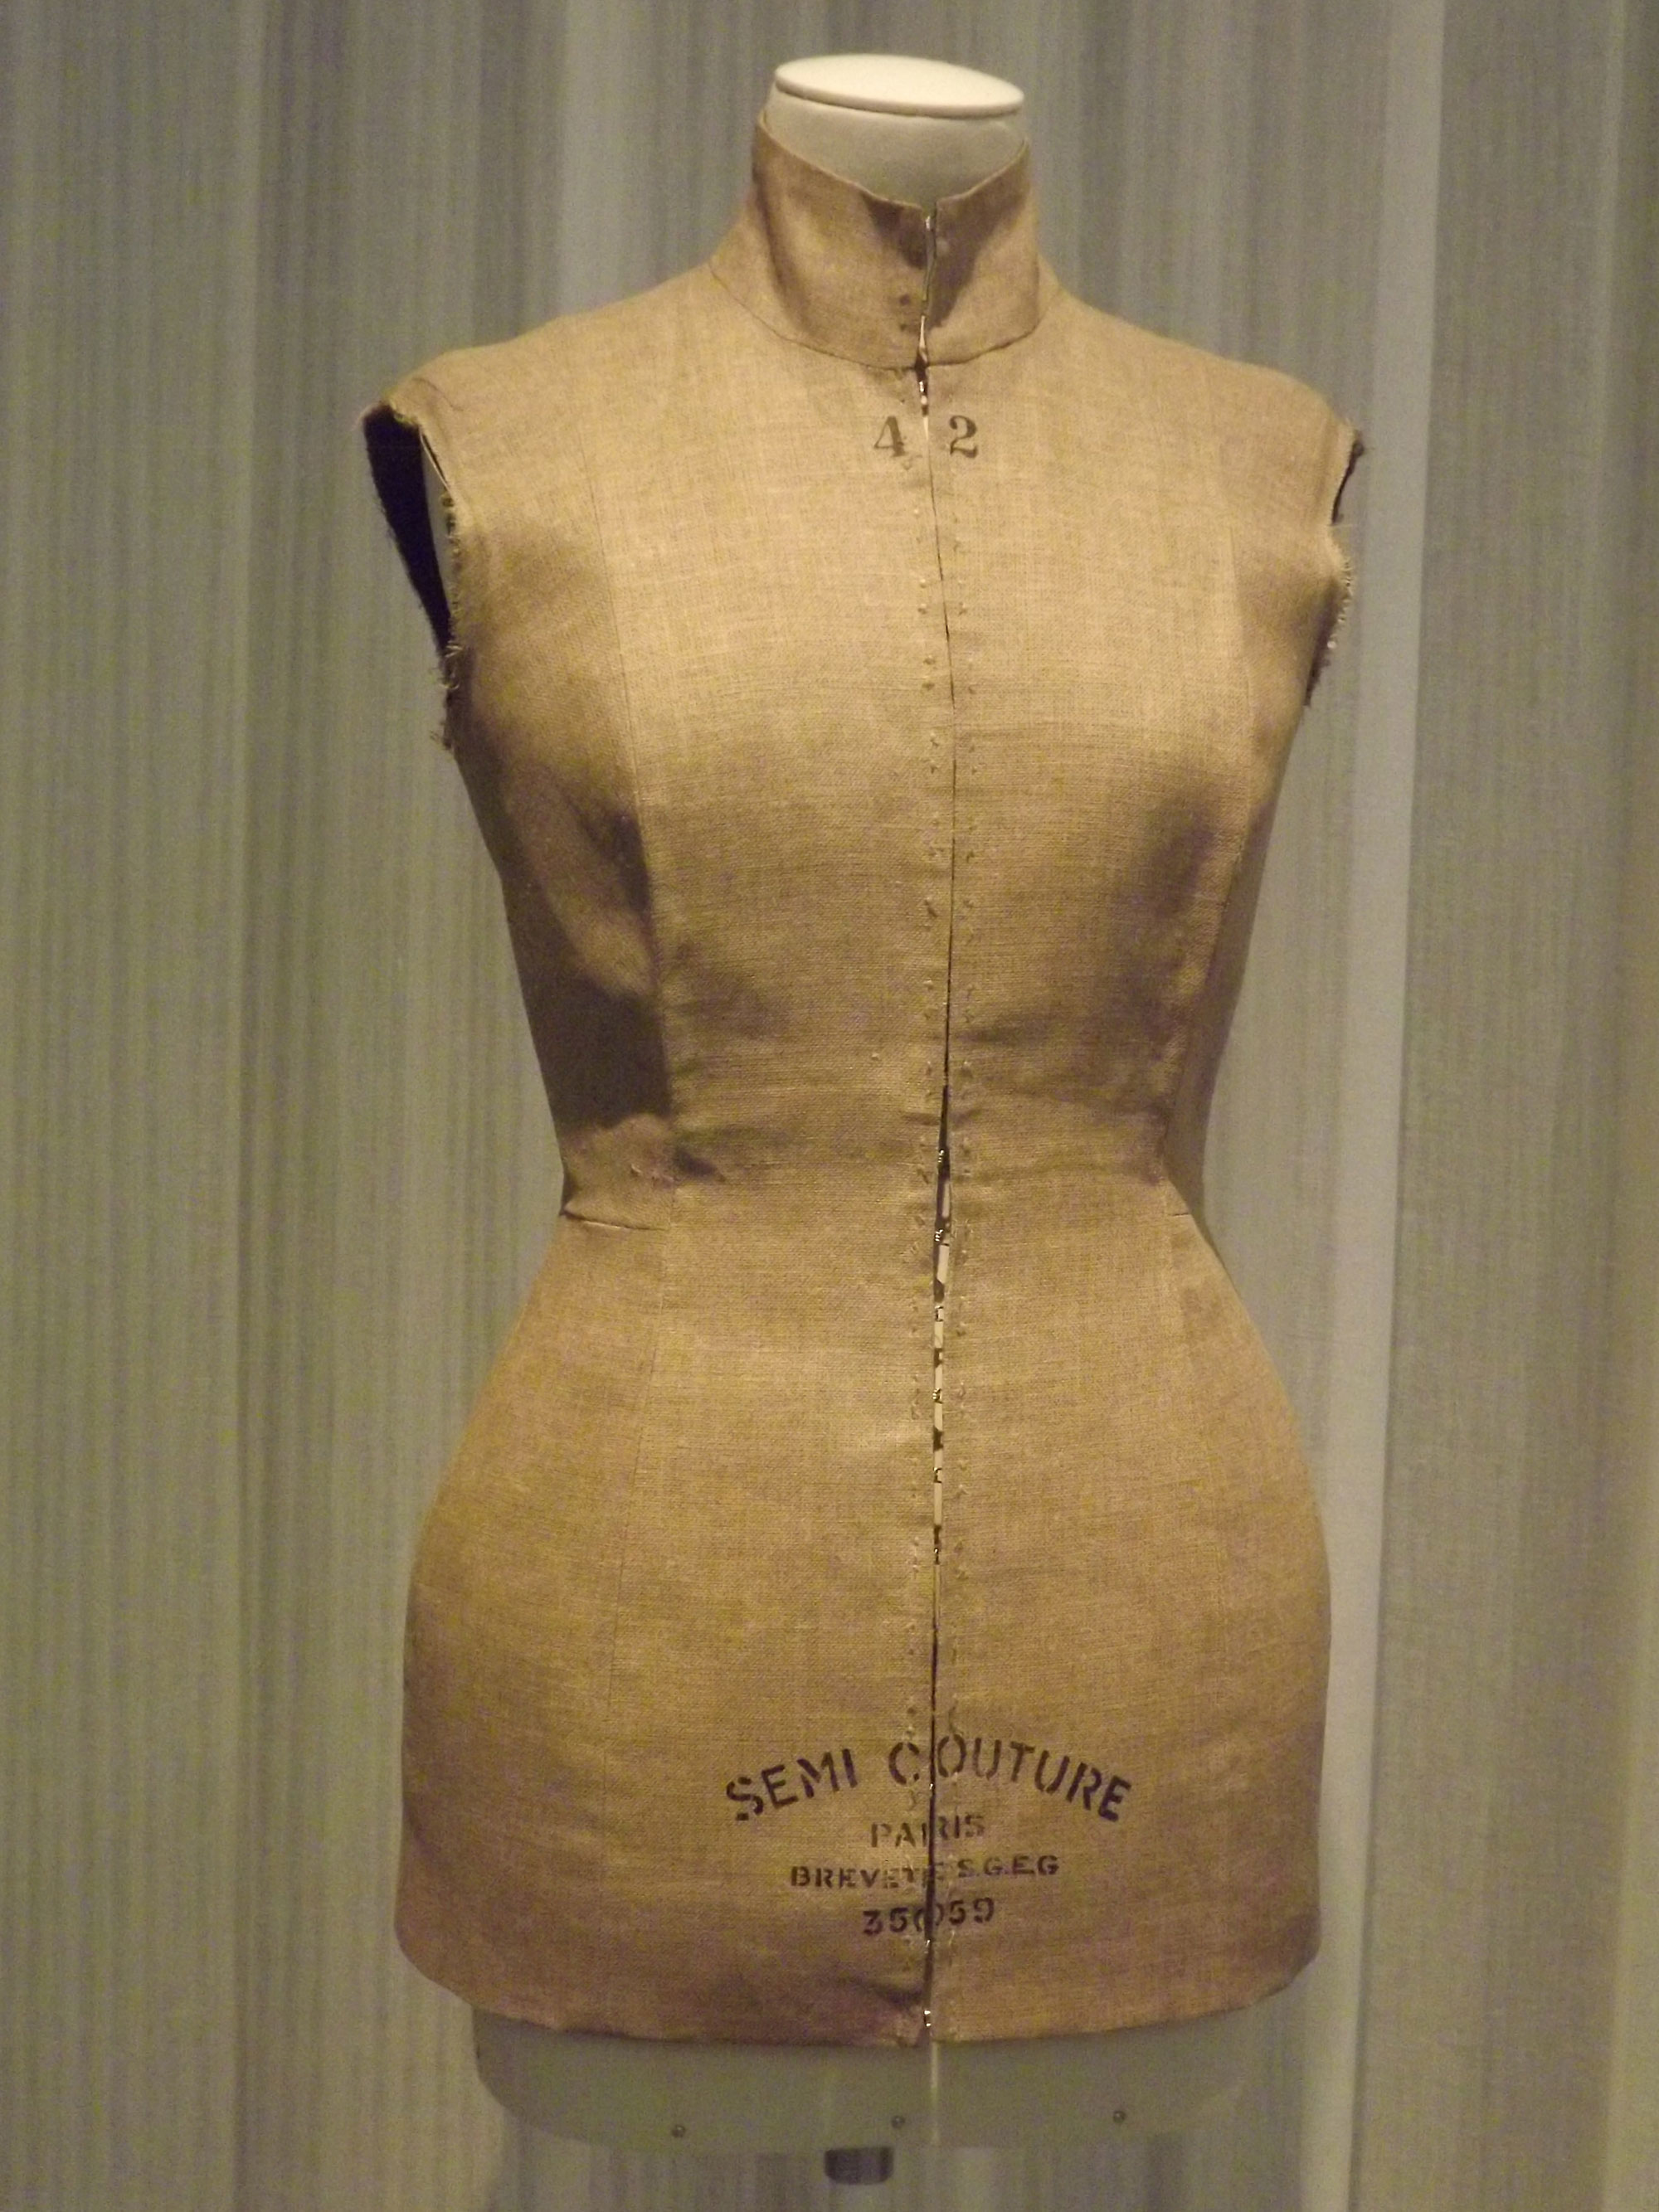 Stockman Dress  from Maison Martin Margiela SS'1997 collection.